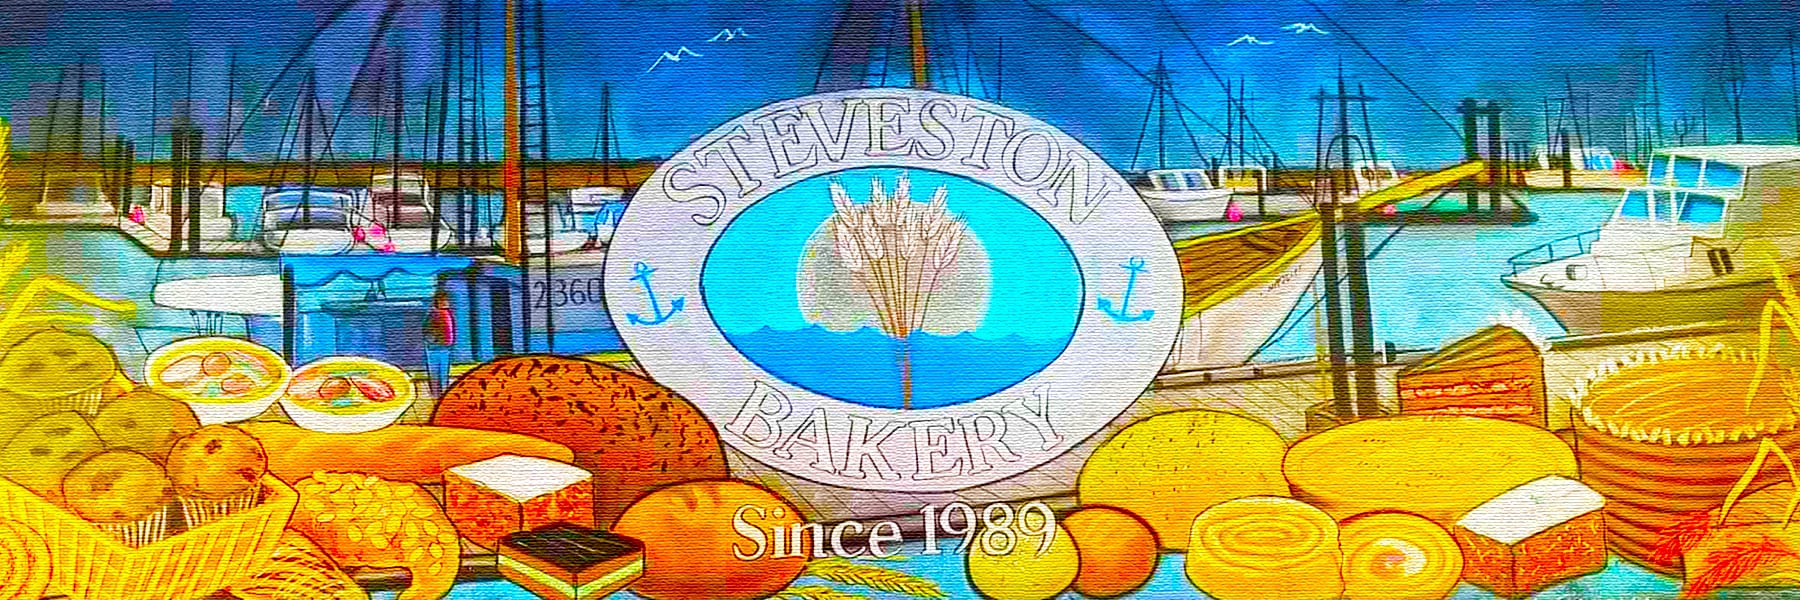 Steveston Bakery in Historic Steveston Village on Best in BC